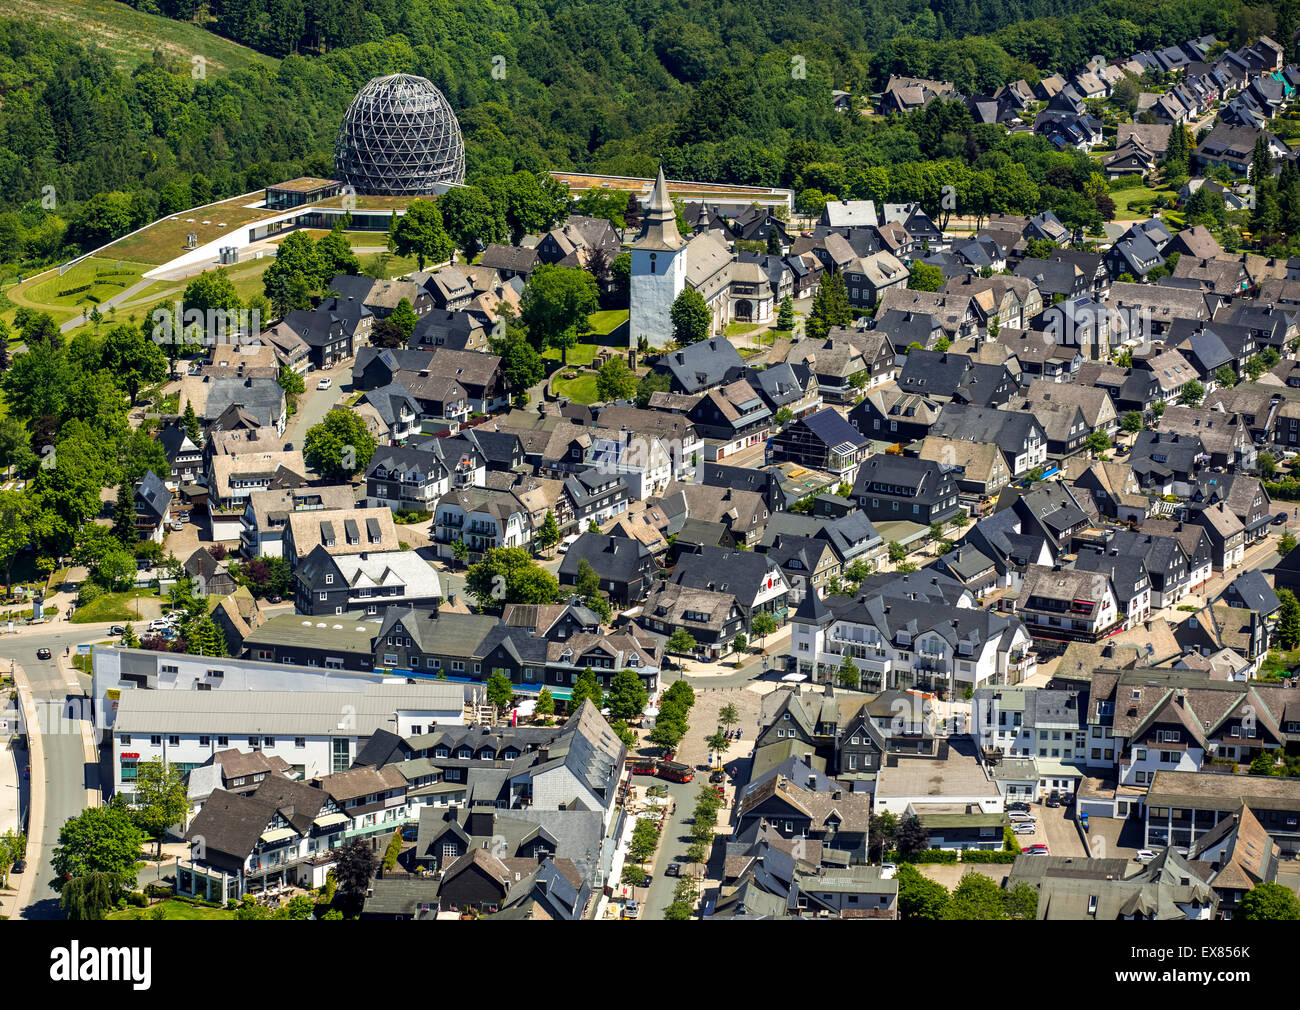 Townscape with the Oversum Vital Resort, Winterberg, Sauerland, North Rhine-Westphalia, Germany - Stock Image